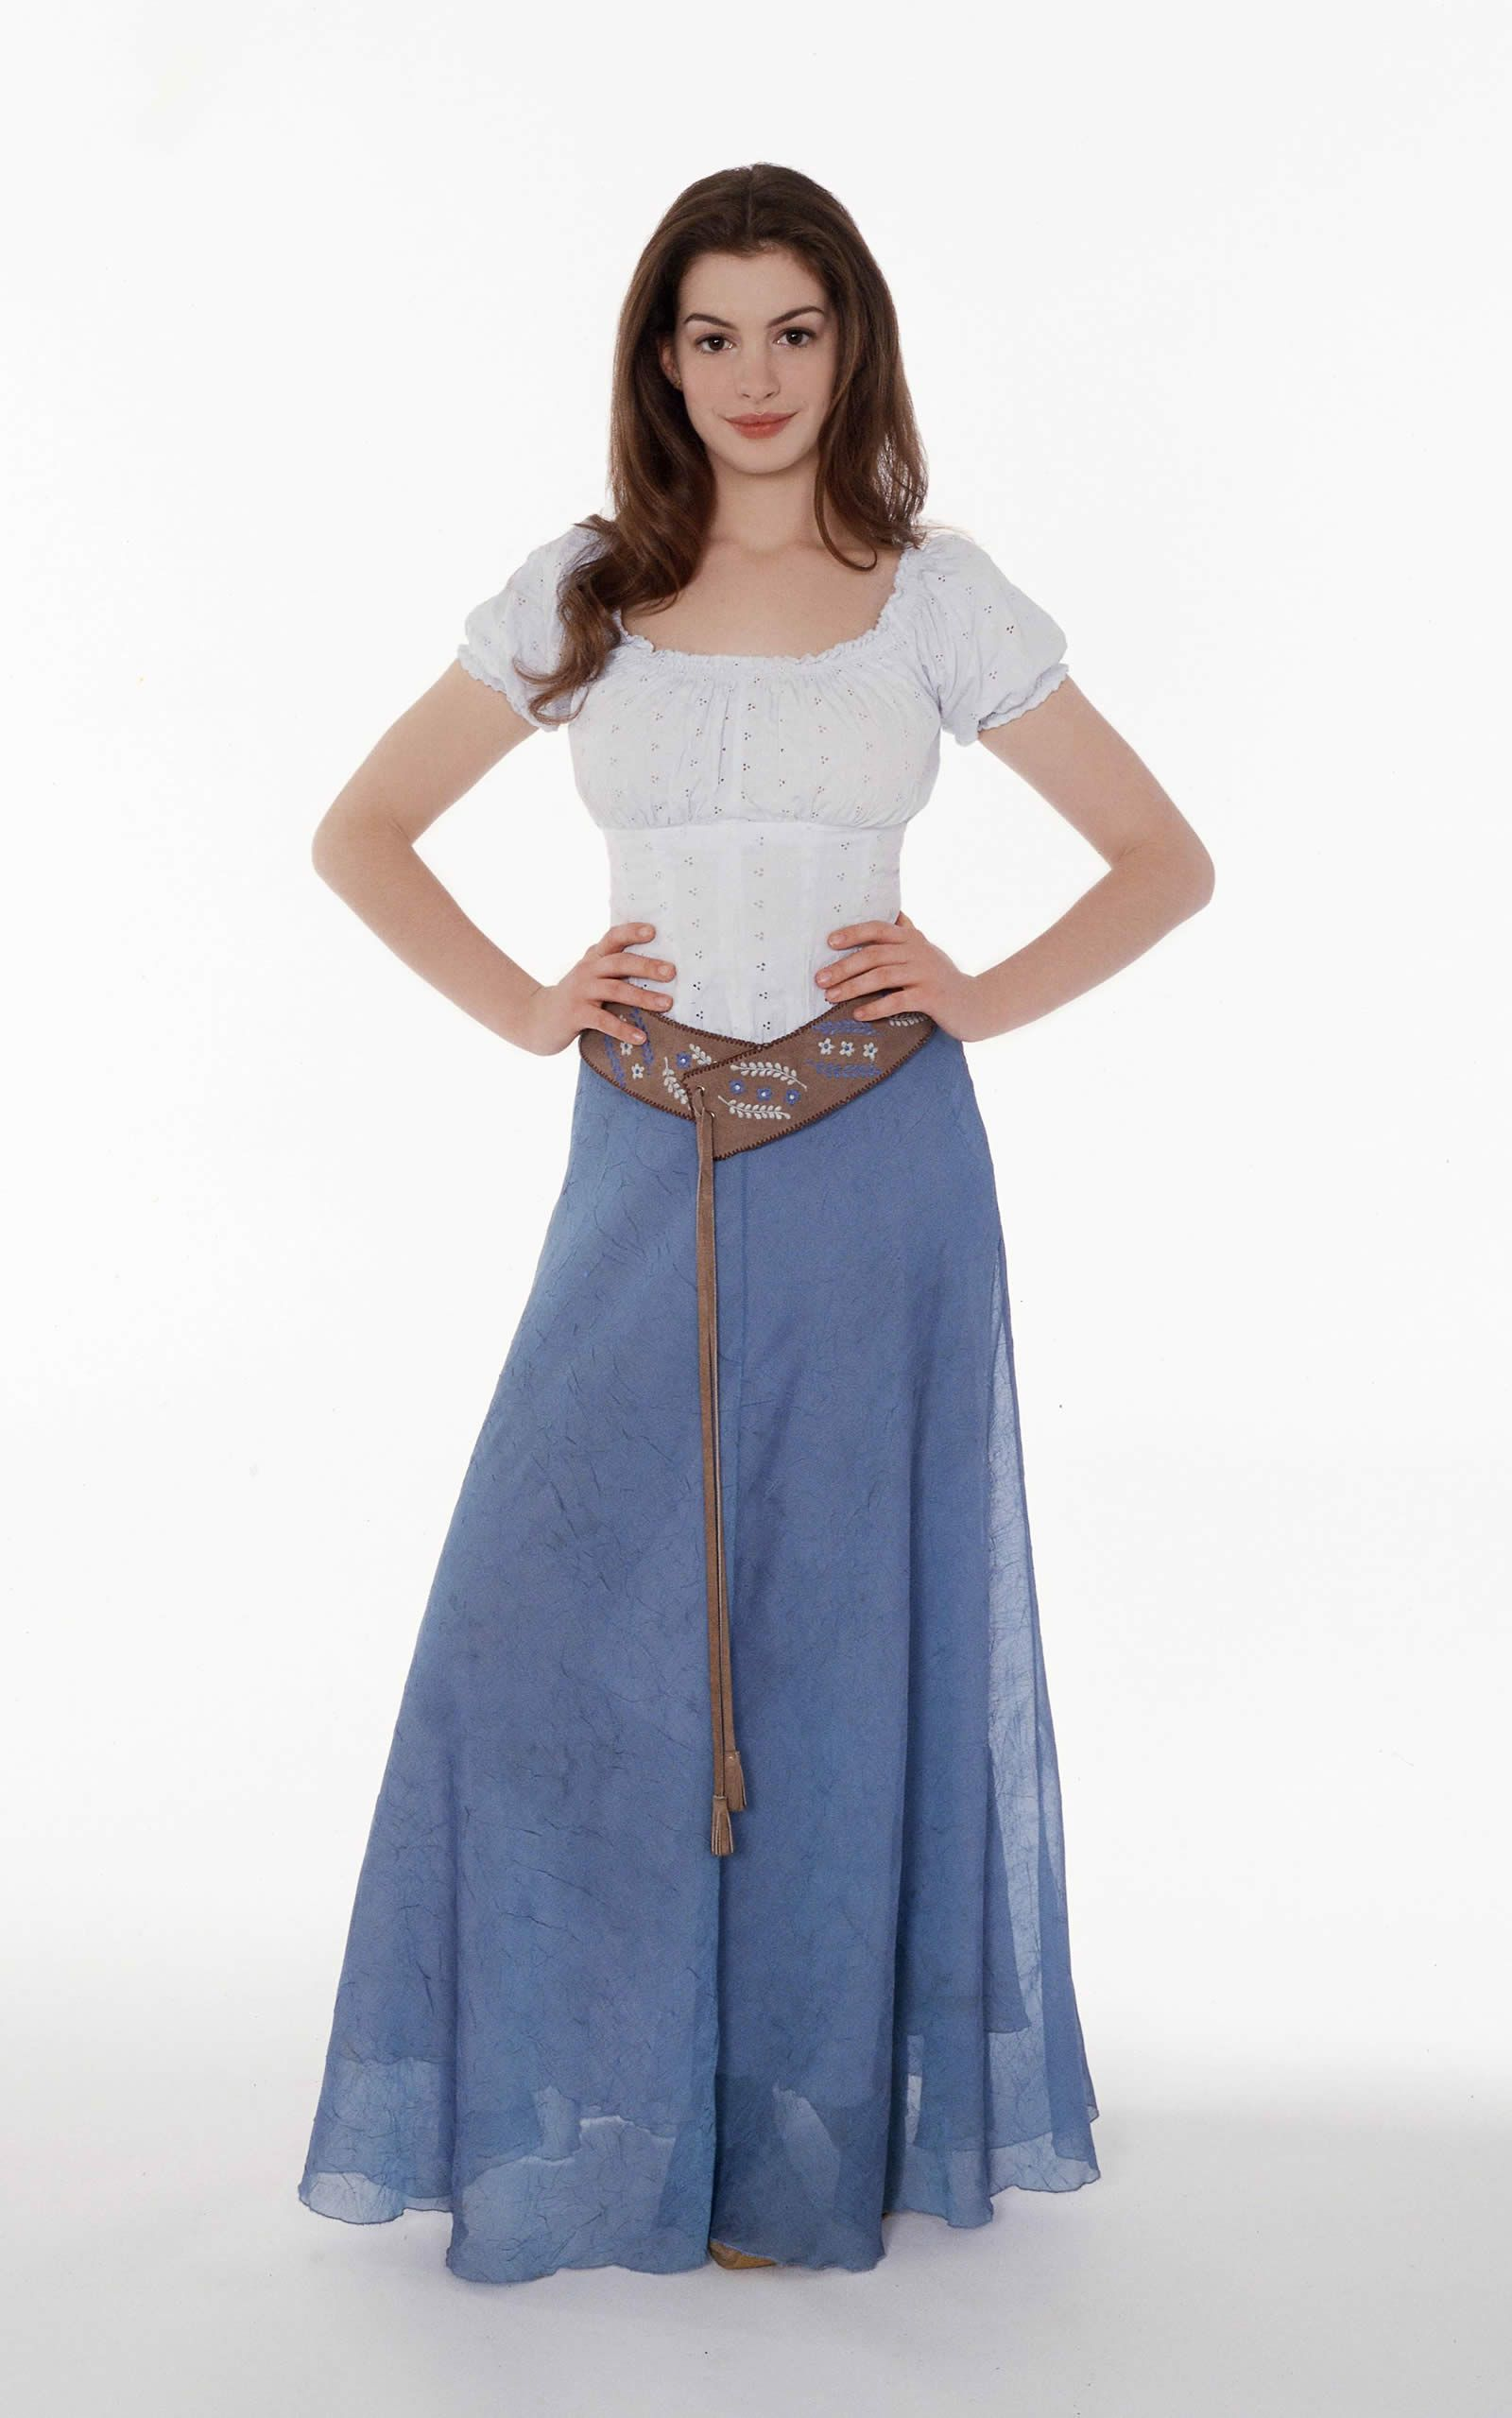 Anne Hathaway Ella Enchanted Photoshoot | Anne Hathaway is ...